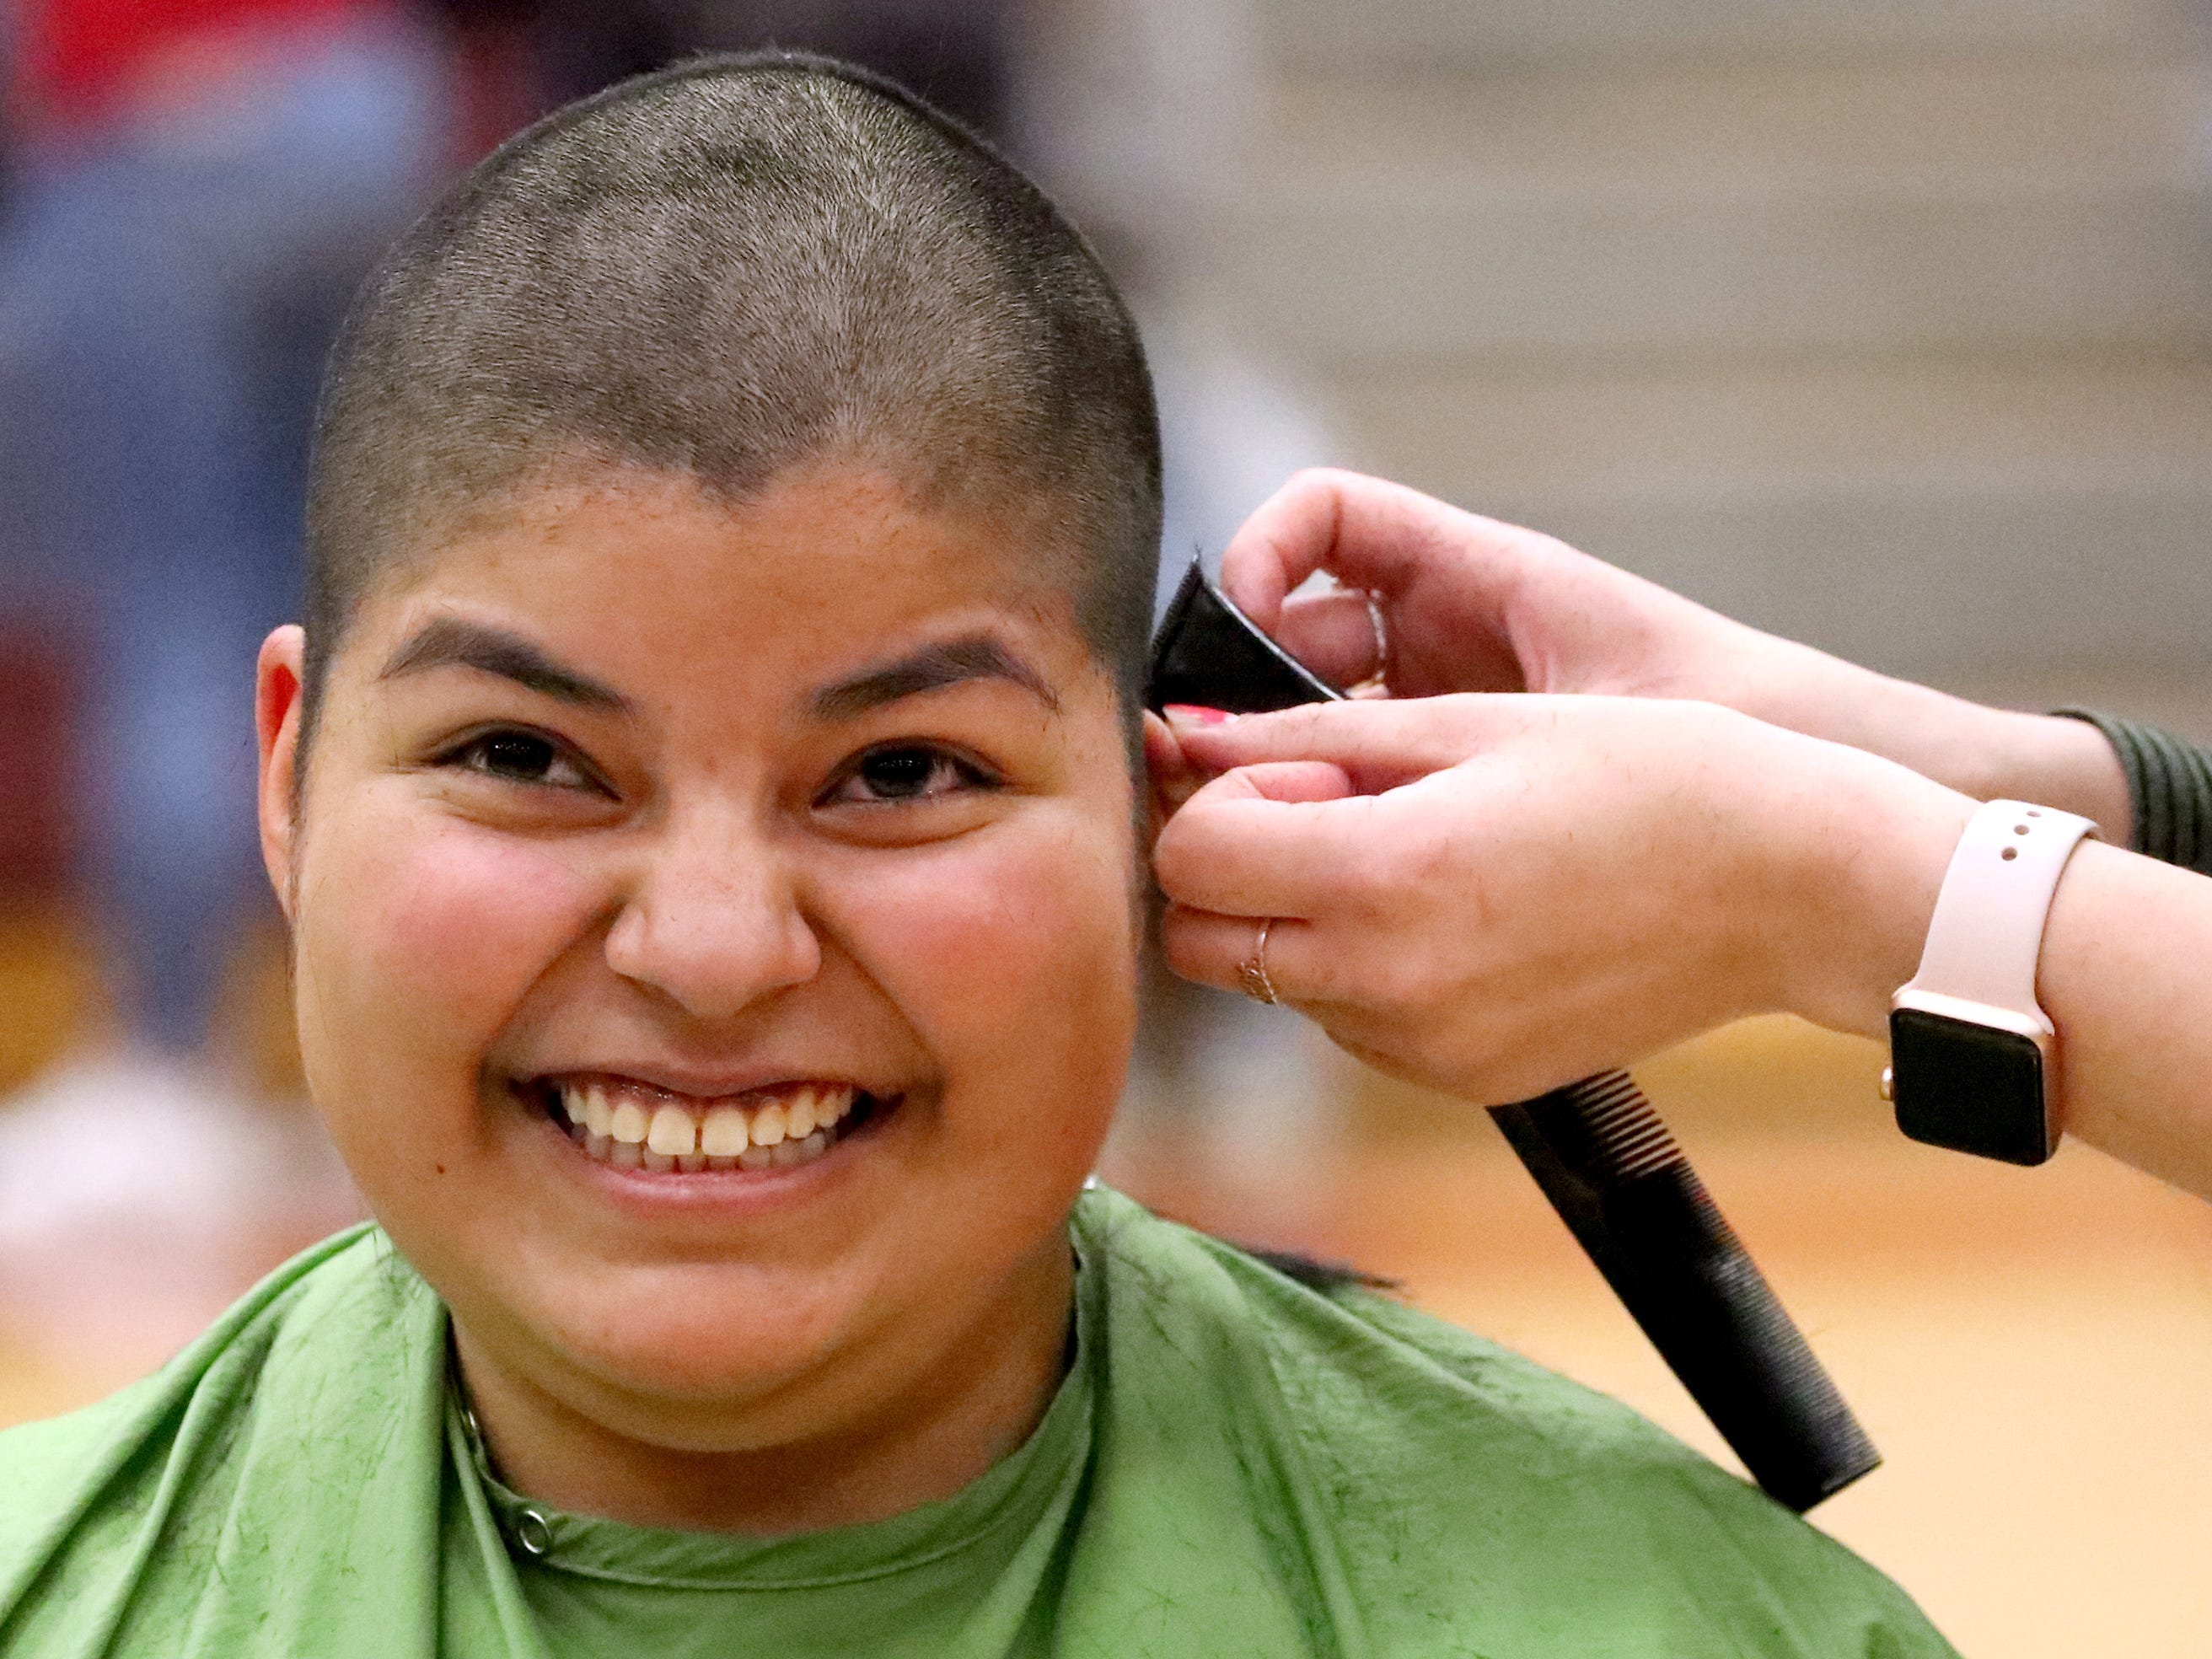 Riverdale senior Juliana Cordova reacts as she gets her head shaved during Riverdale High School's sixth annual Brave the Shave fundraiser to benefit St. Baldrick's Foundation on Thursday, March 21, 2019. The organization raises funds and awareness for childhood cancer.